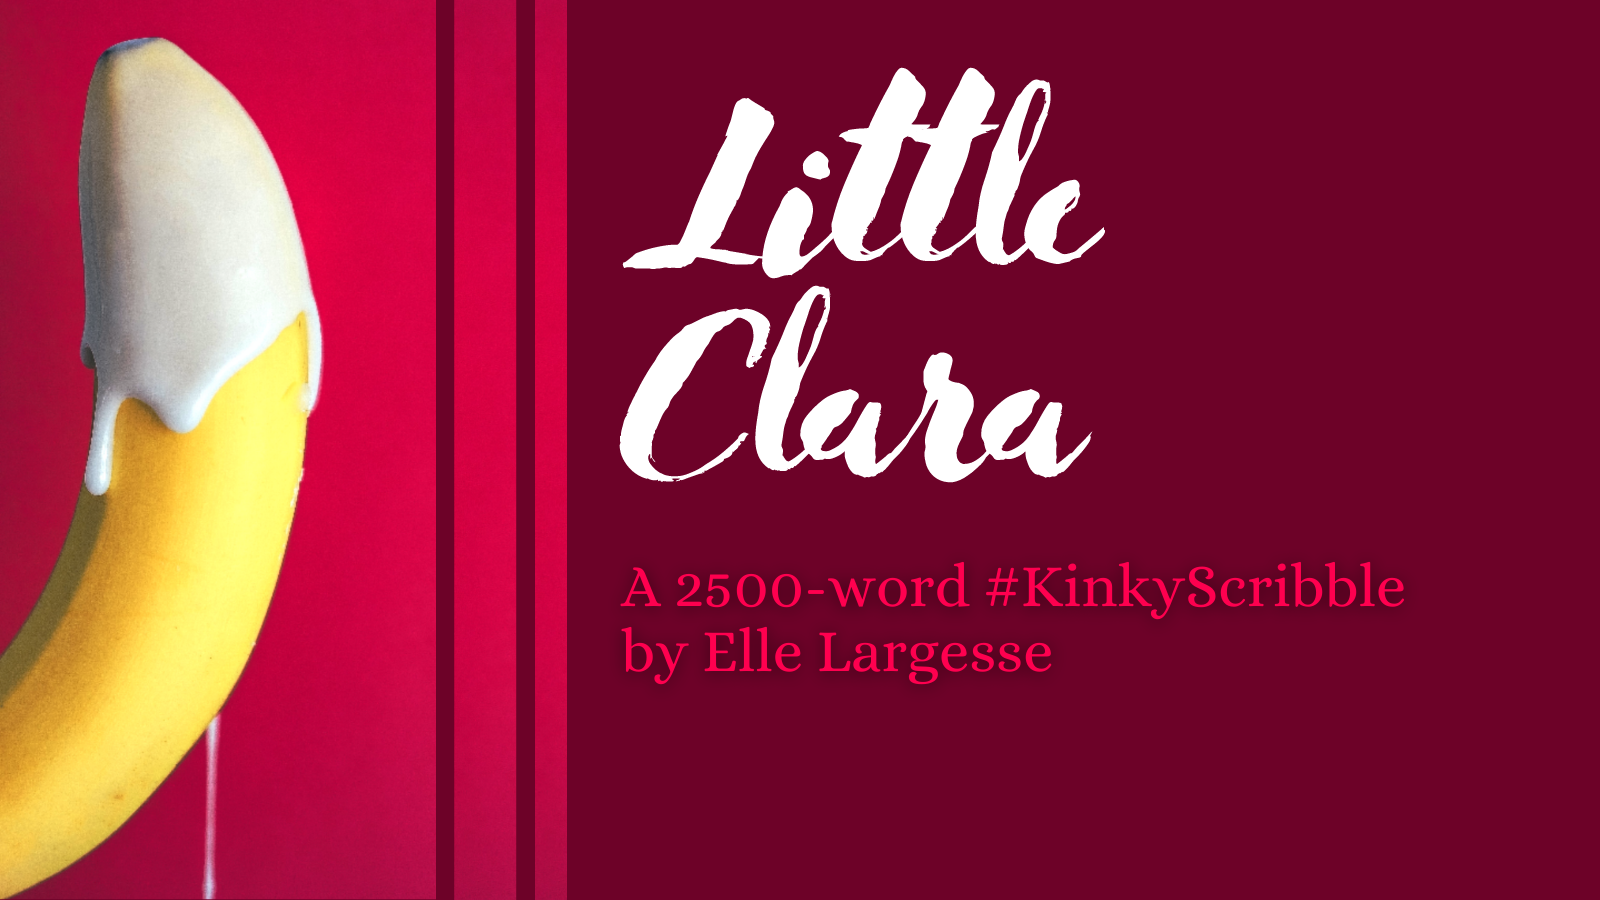 "A yellow banana on a red background is half-coated in white icing that drips down the image. Text reads ""Little Clara, a 2500-word #KinkyScribble by Elle Largesse"""